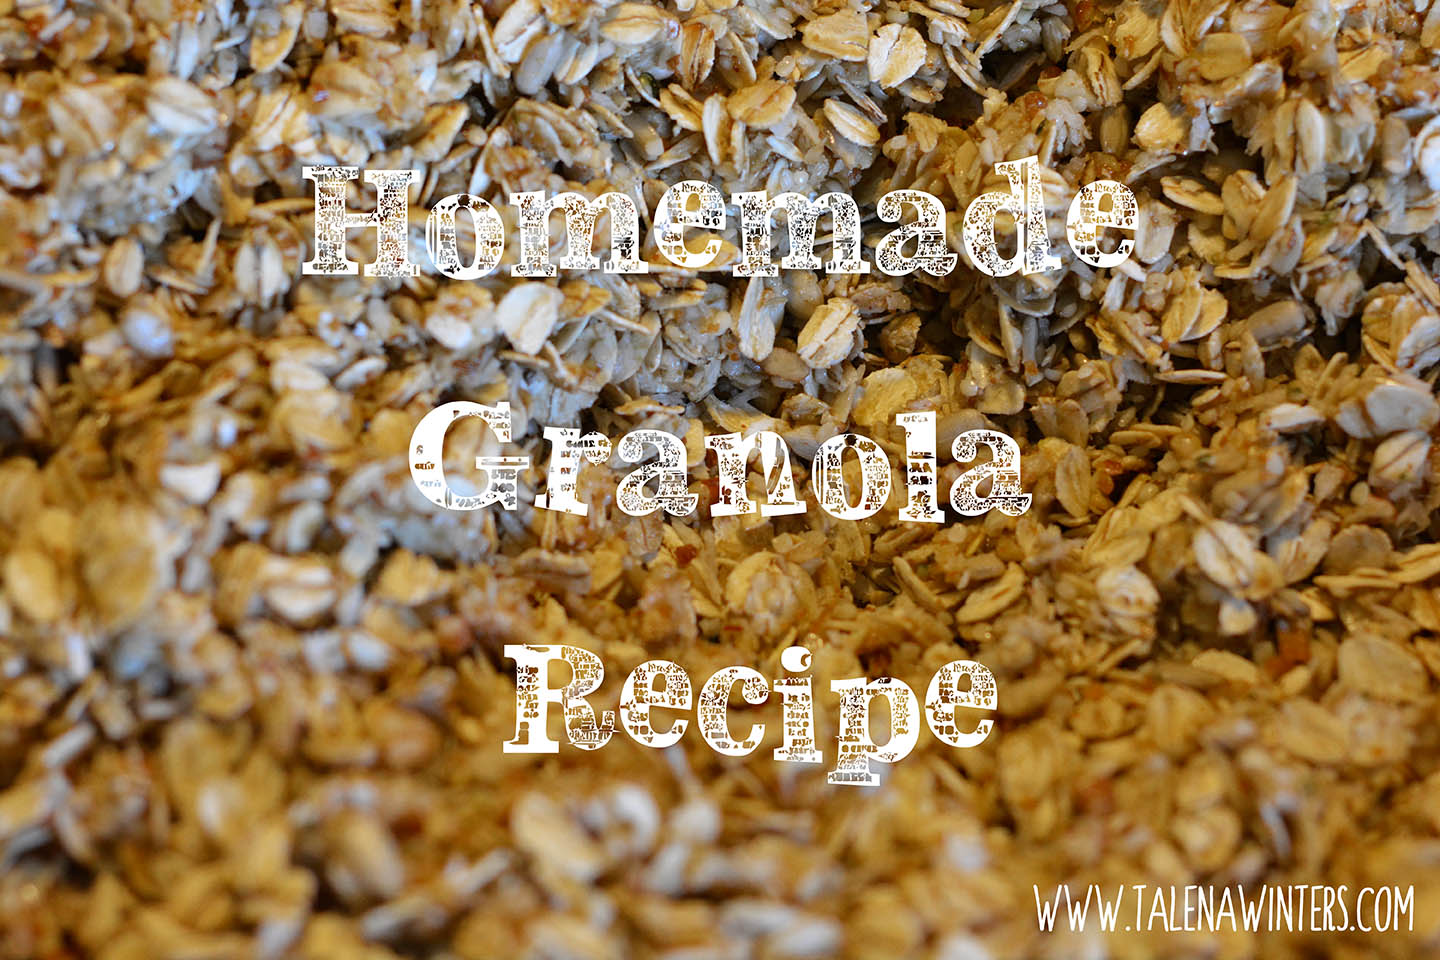 Yummy and easy homemade granola from www.talenawinters.com.